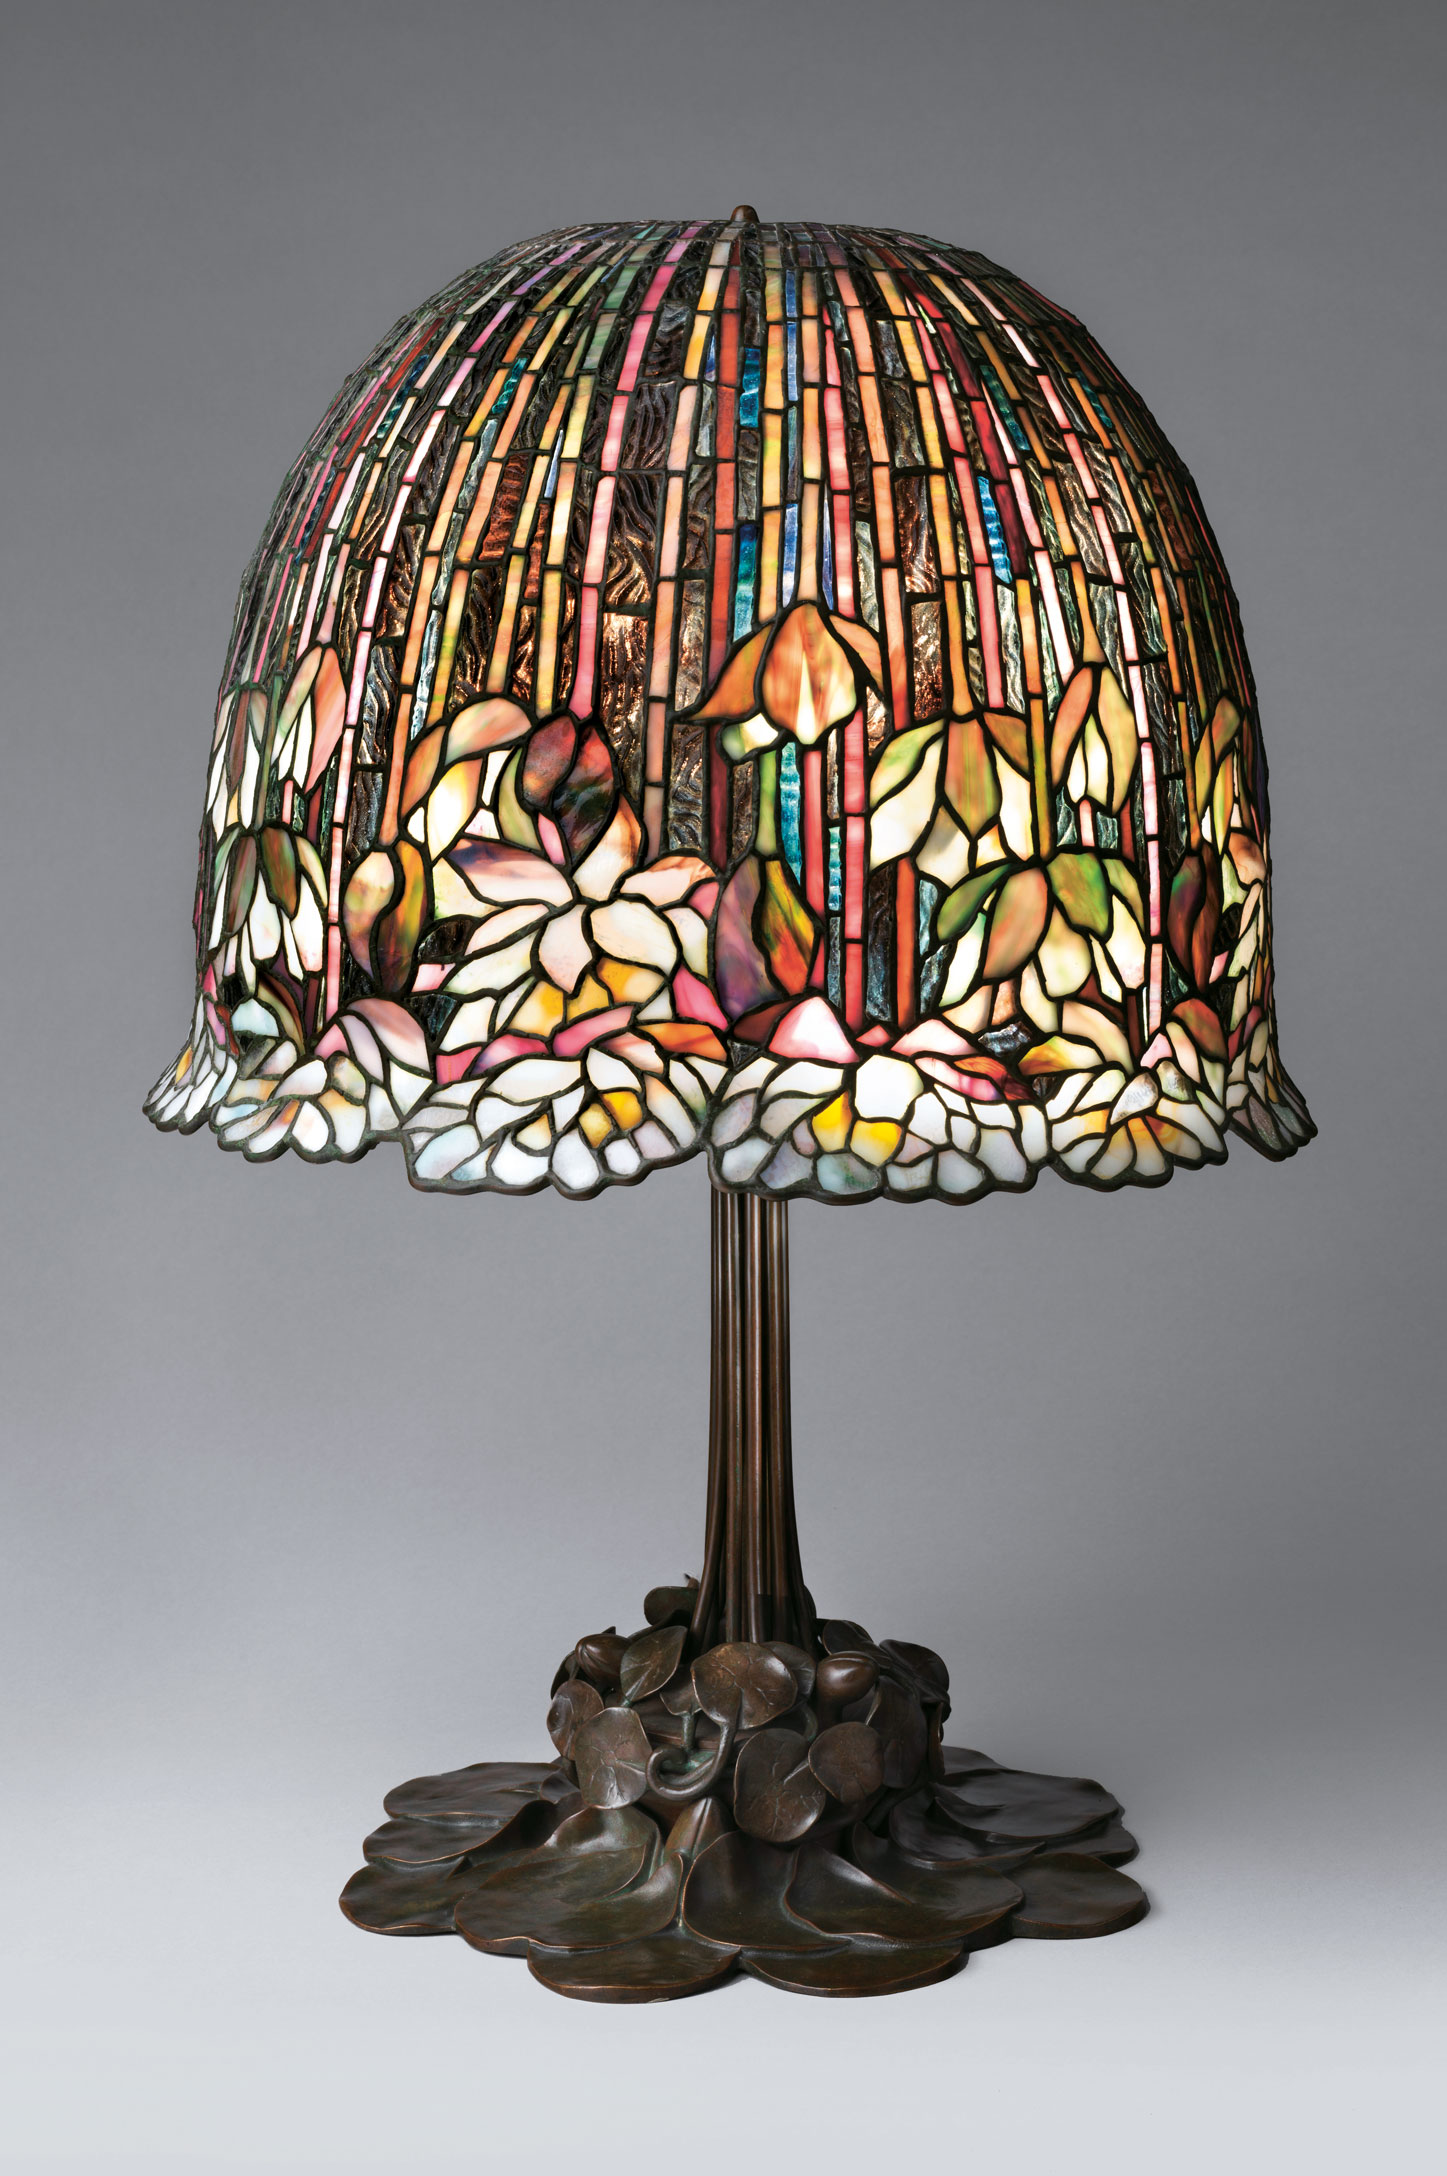 You instantly spot the Tiffany lamp (p.26, fig. 2), because you've always loved Tiffany glass. The glass is designed with colours flowers. From Art =